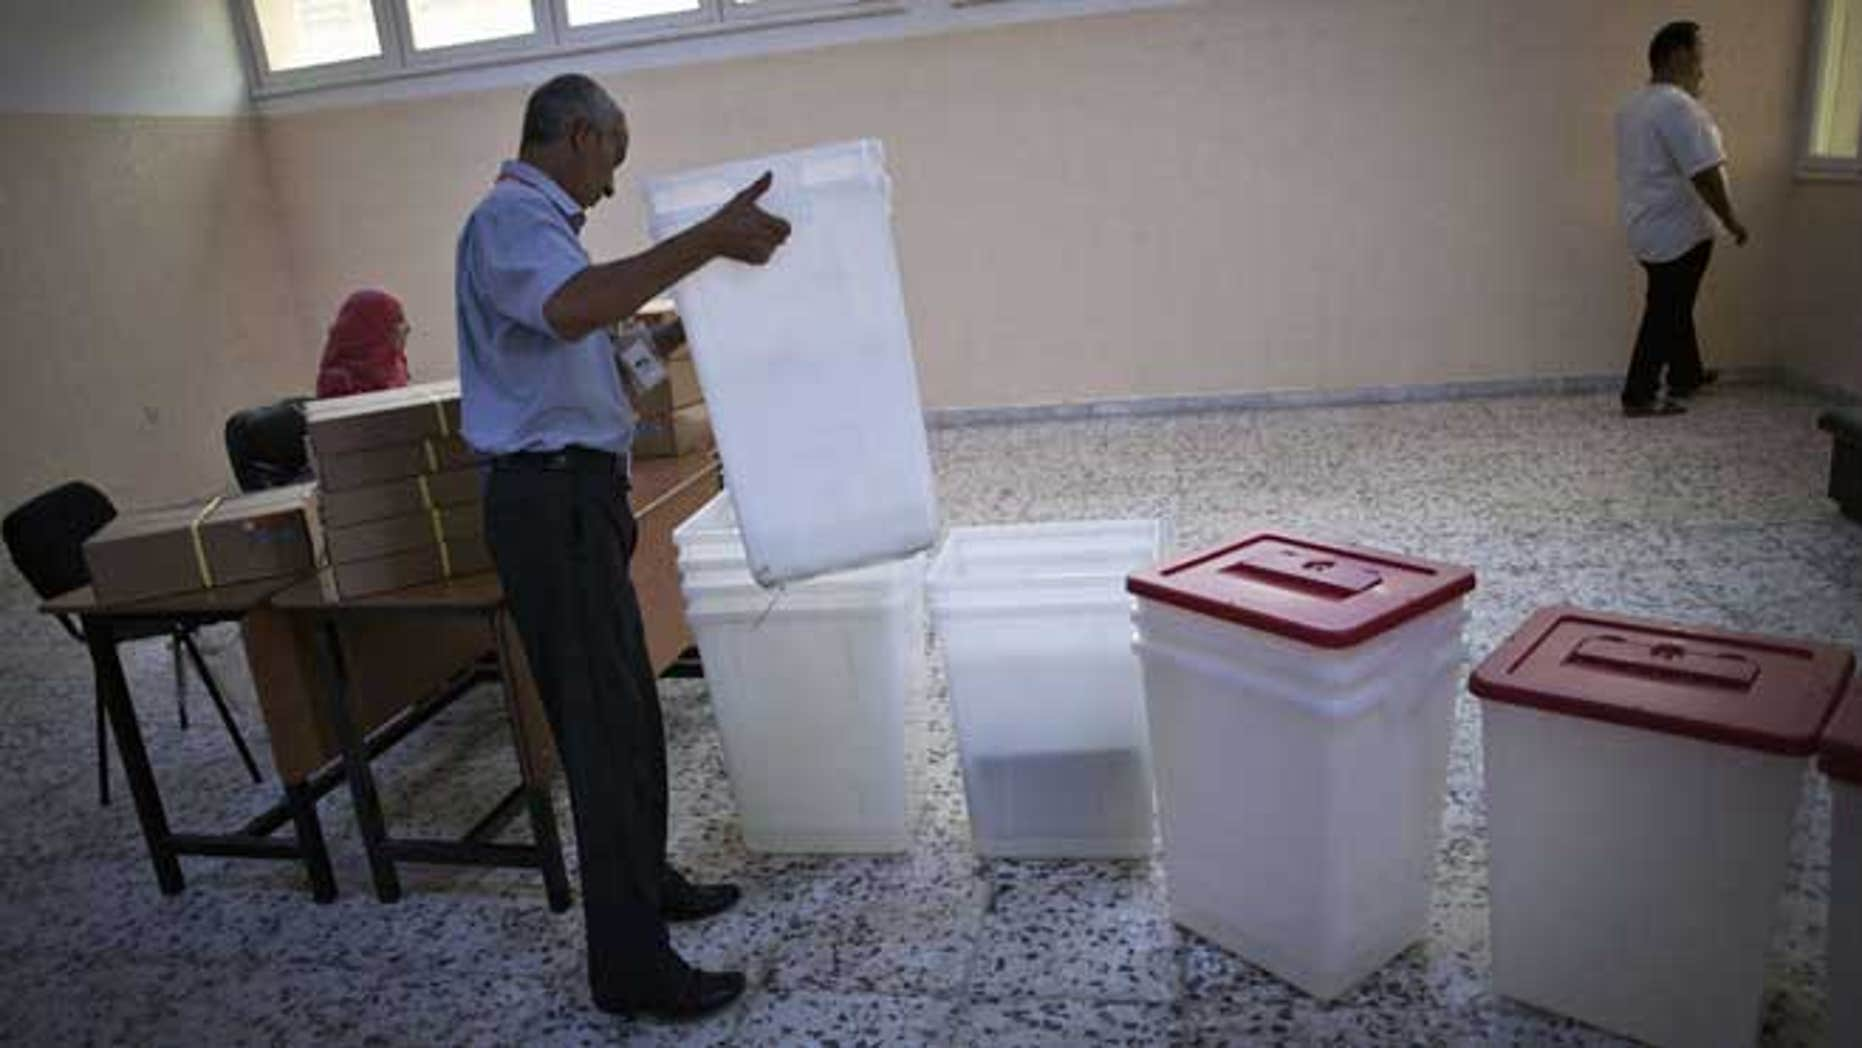 July 6, 2012: A Libyan election official works at a polling station in Tripoli, Libya. The Libyan National Assembly elections - the first free election since 1969-will take place on July 7, 2012.